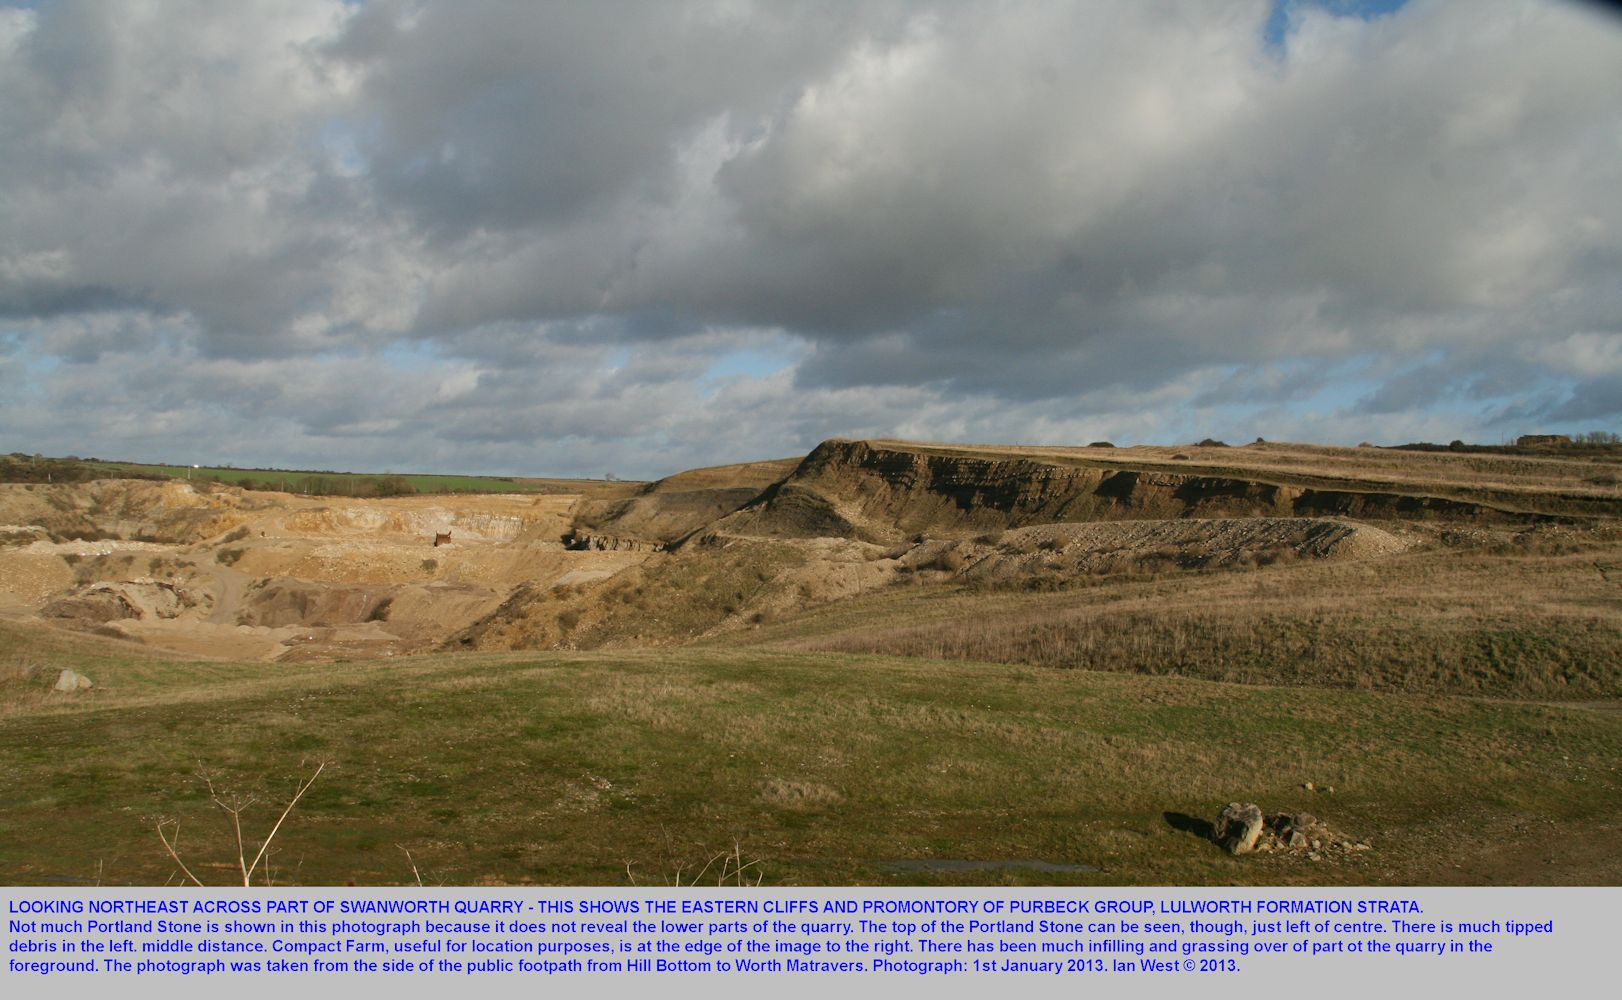 A general overview of the higher parts of Swanworth Quarry, looking towards the northeast, 1st January 2013